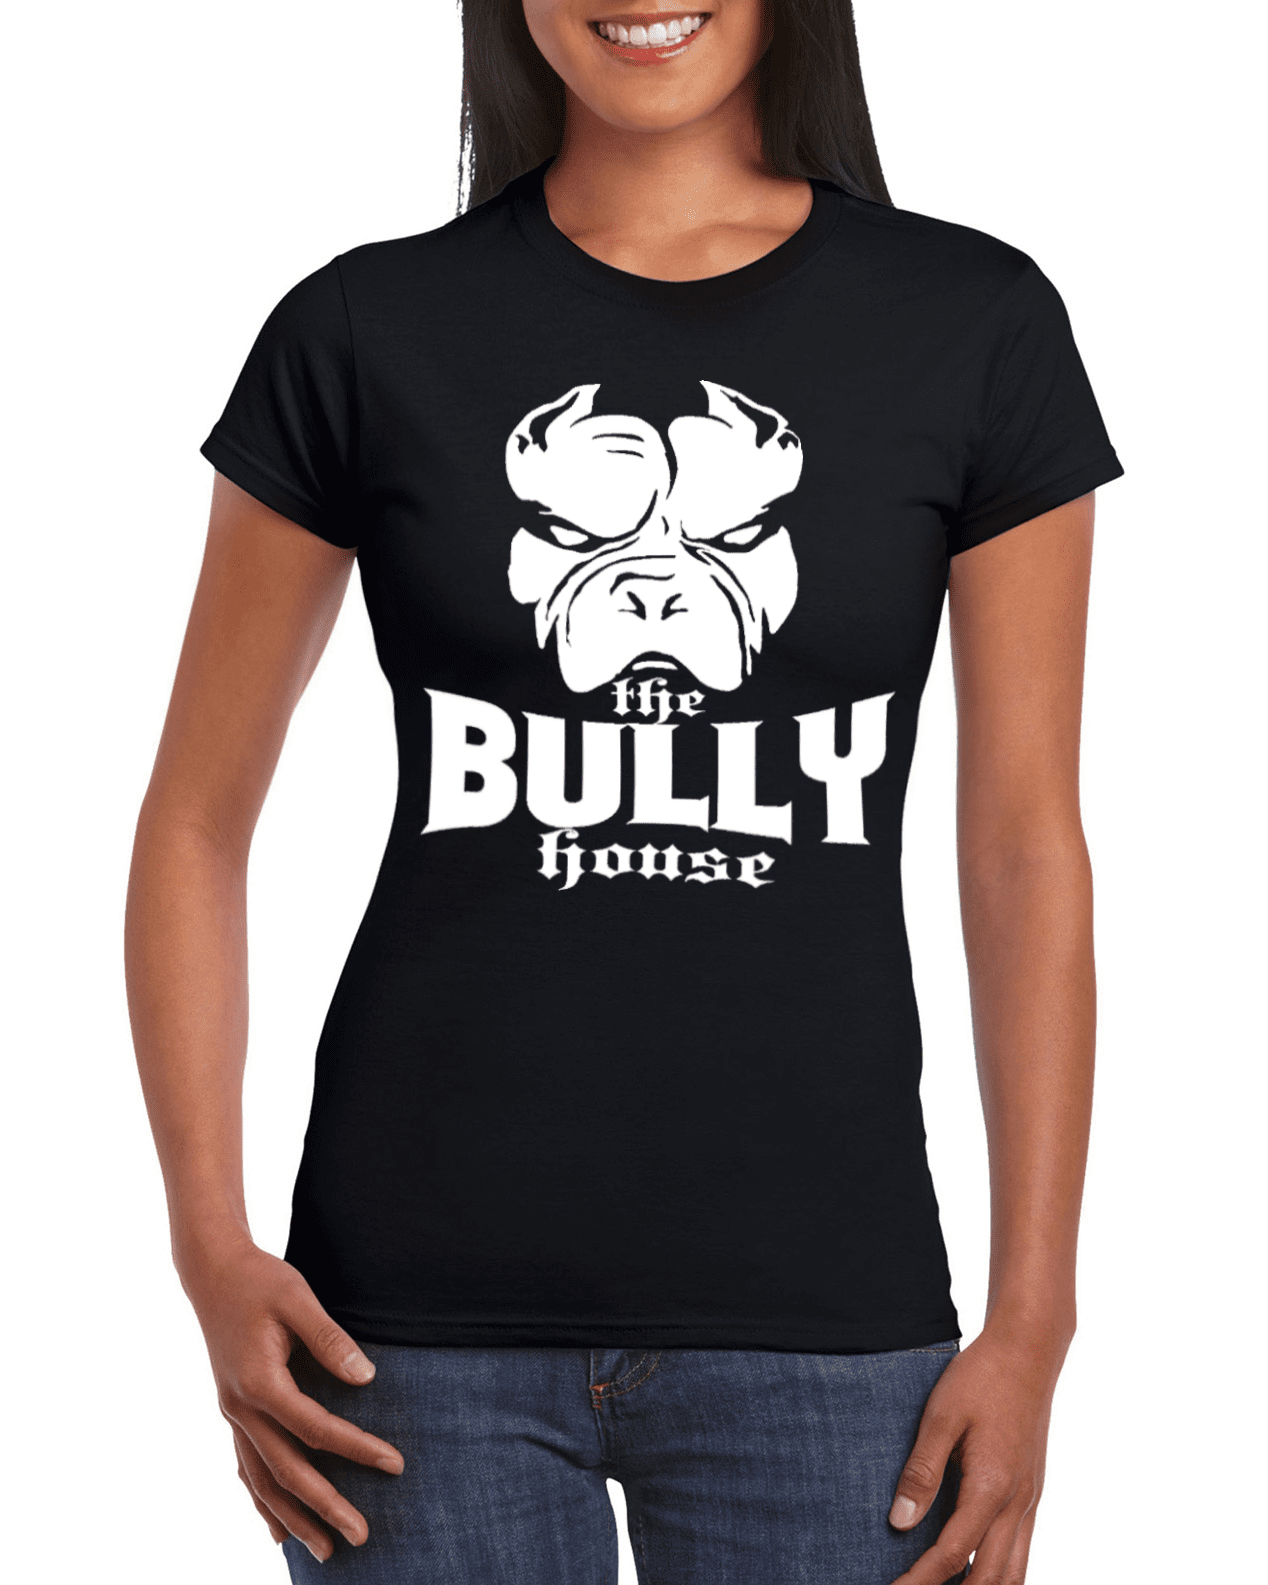 The Bully House -- T-SHIRT - WOMENS  CUT (White print)